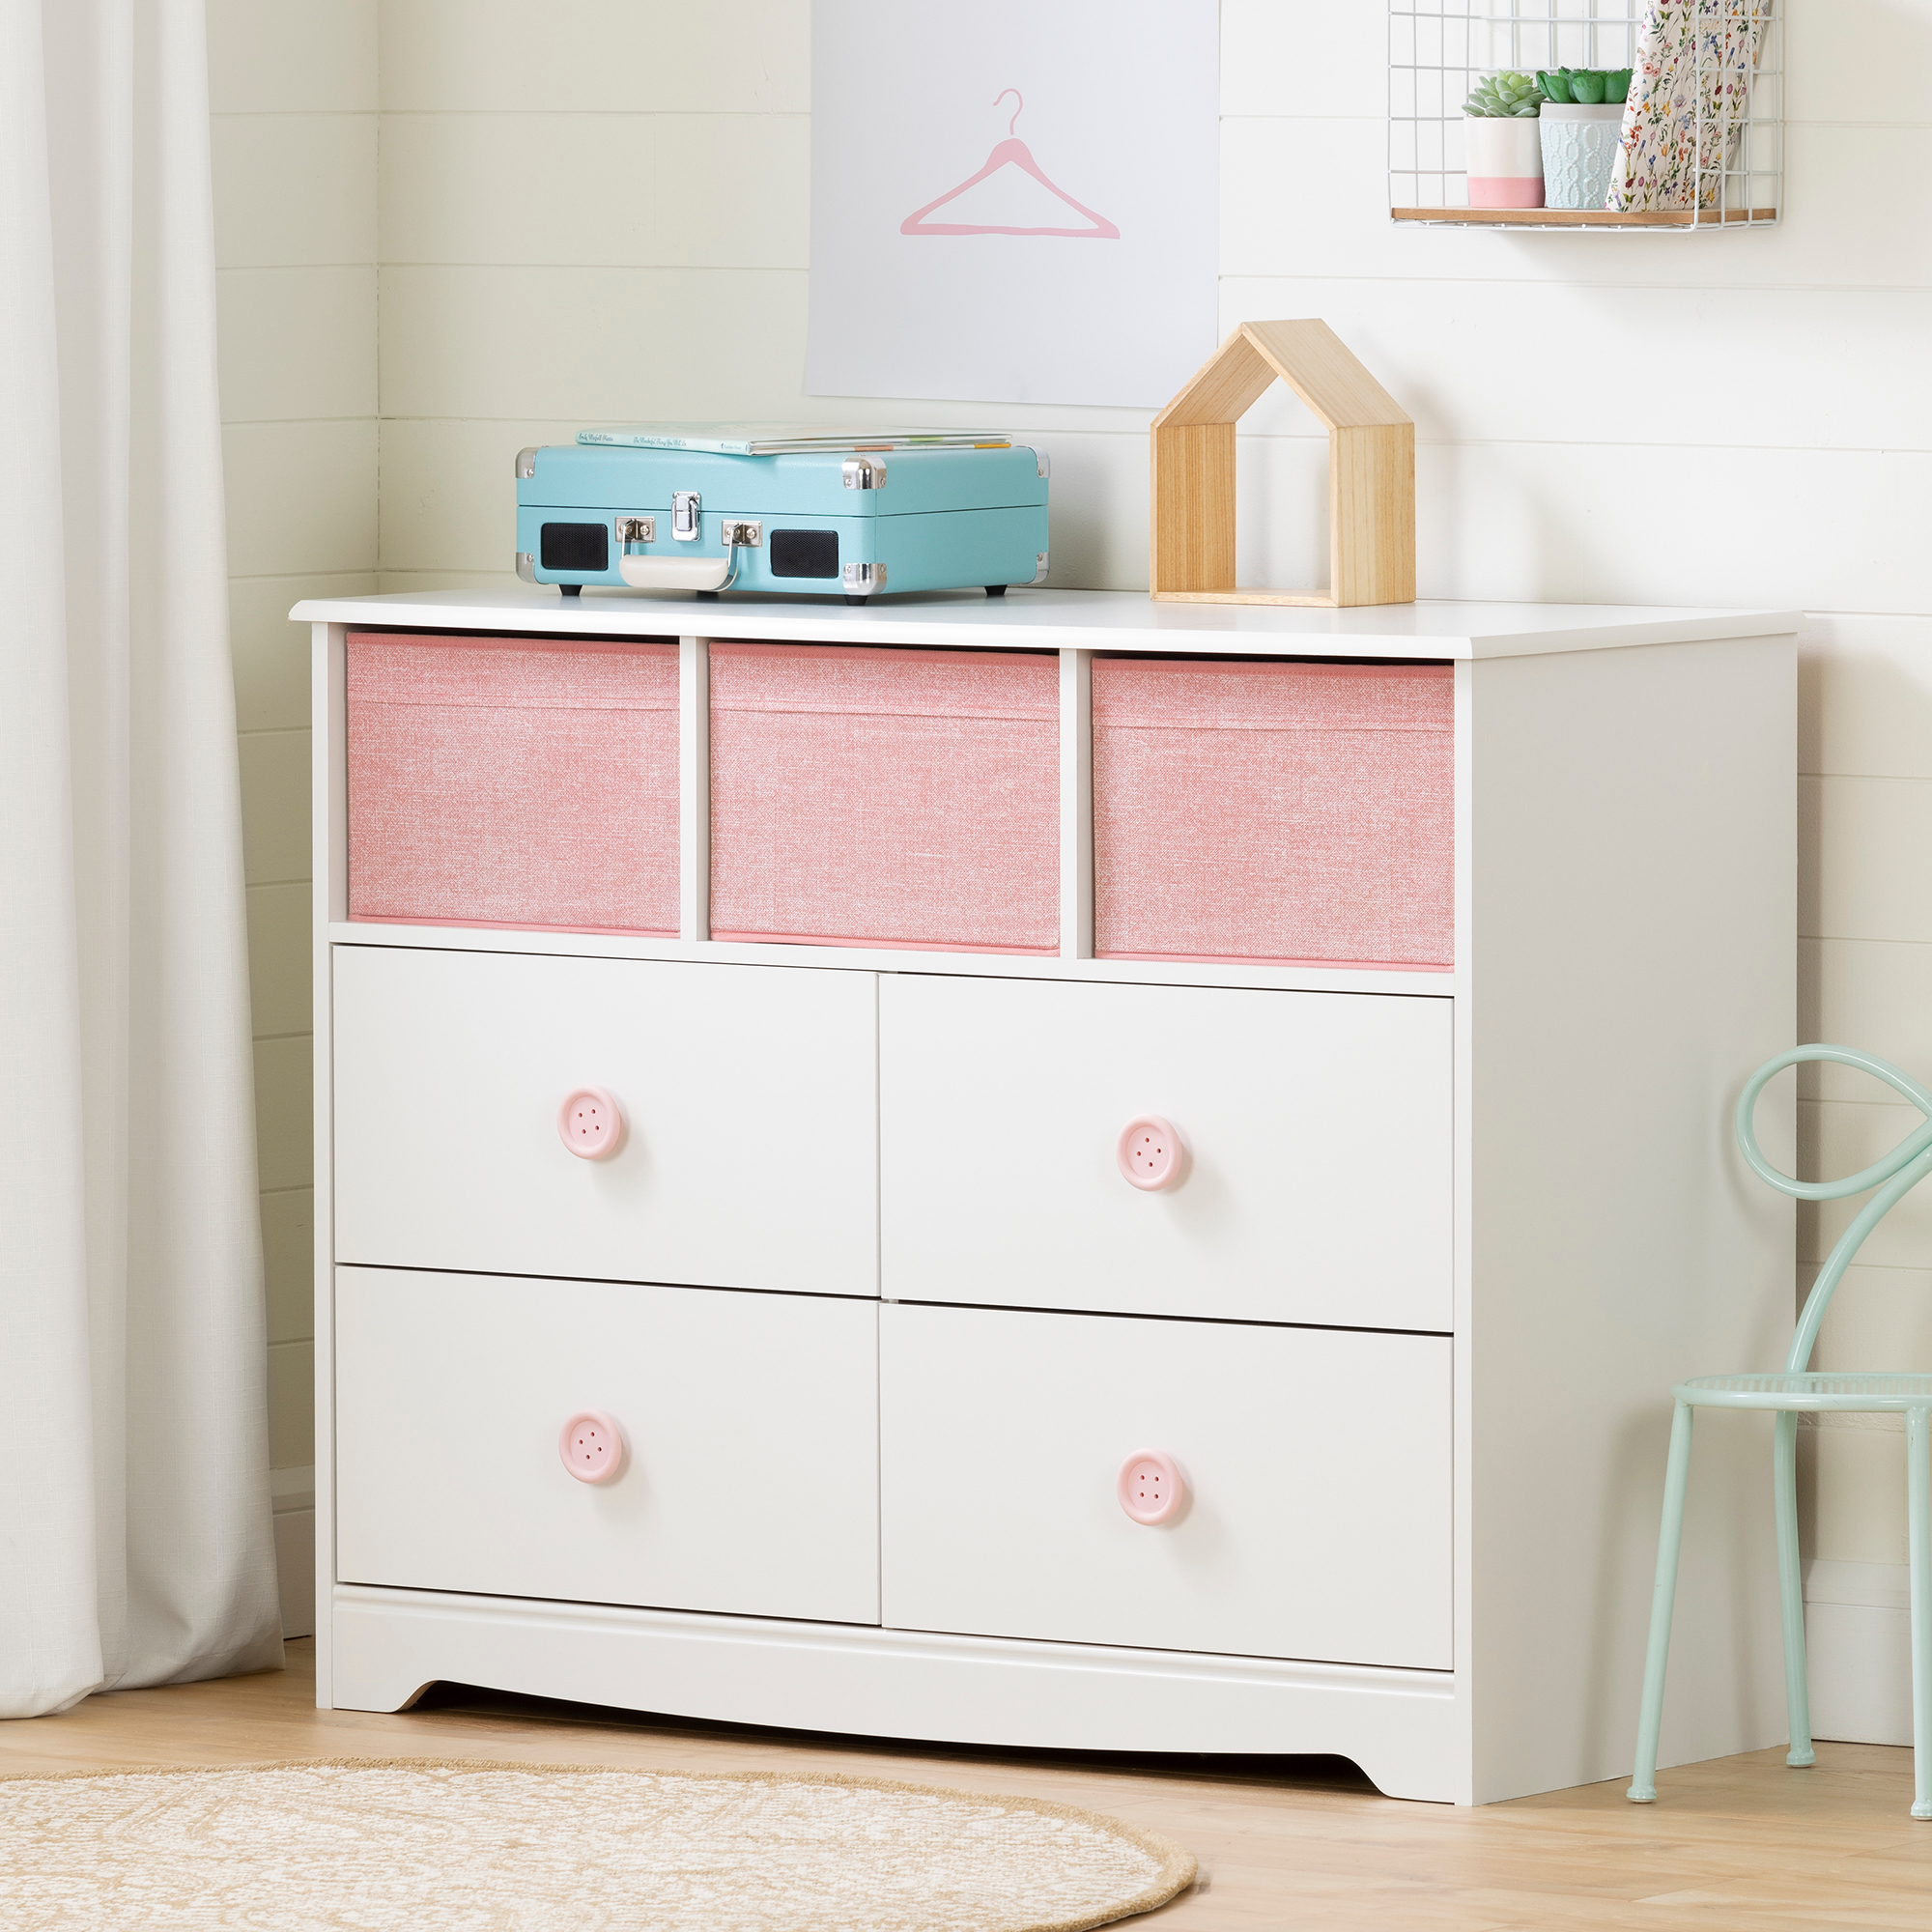 South Shore Sweet Piggy 4-Drawer Dresser with Baskets, White and Pink